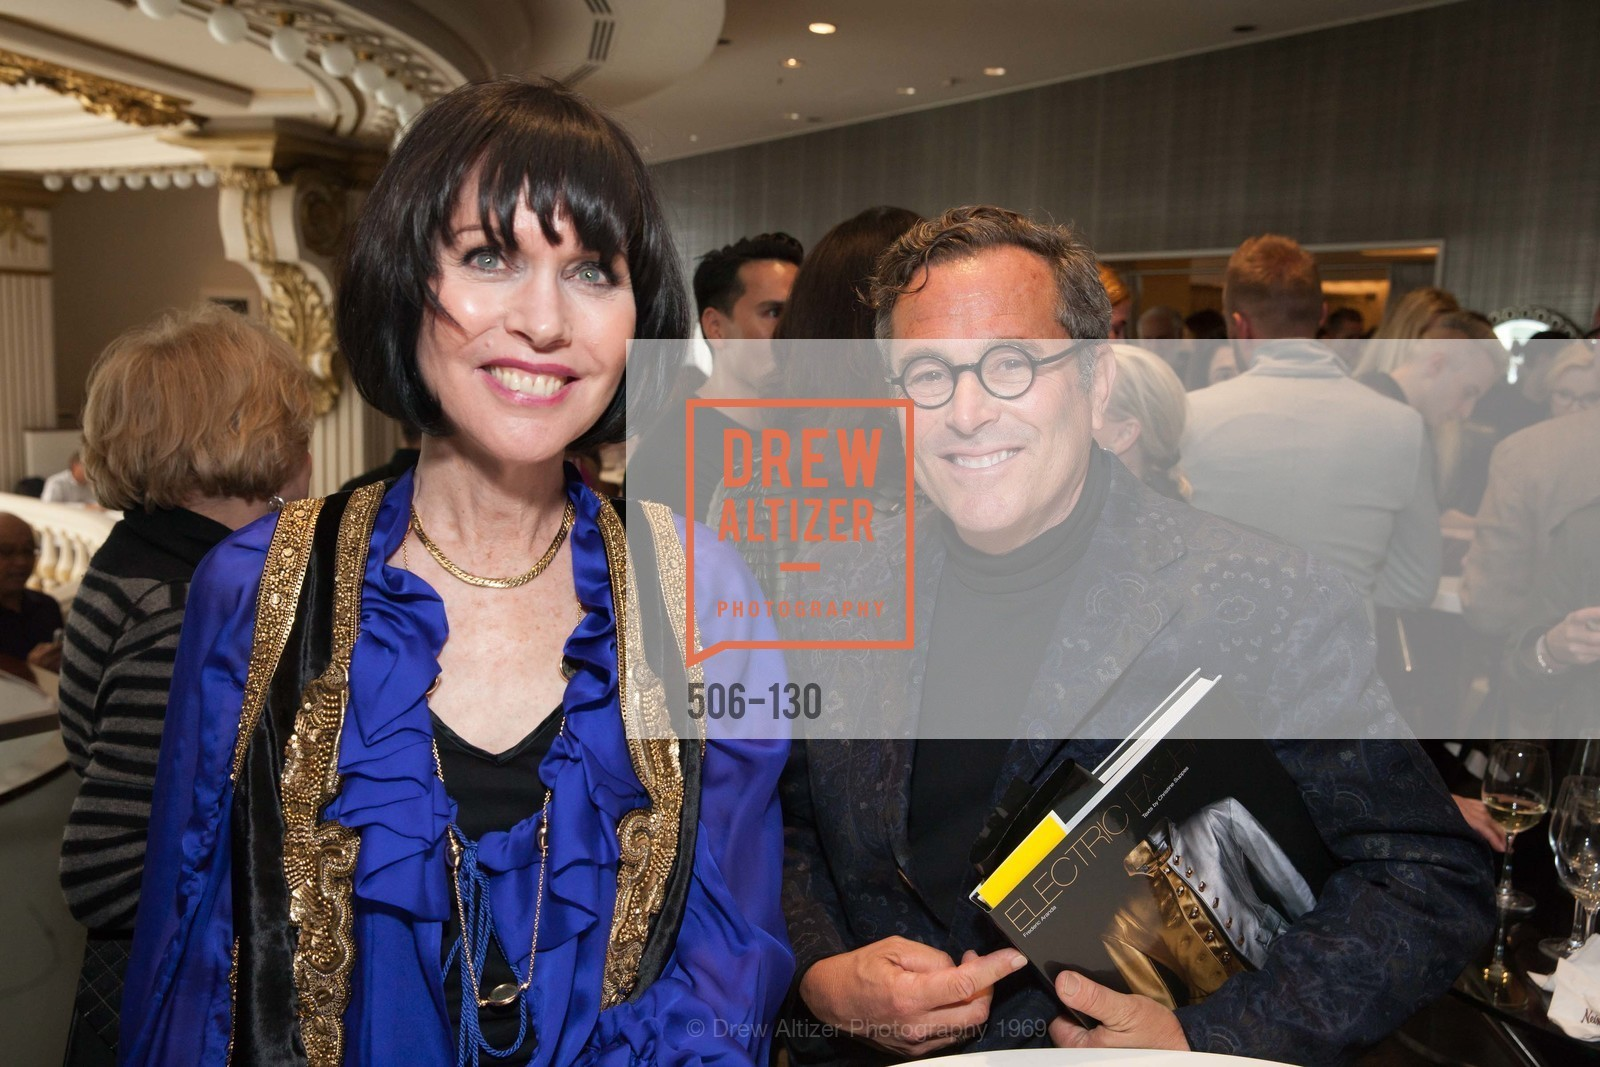 Christine Suppes, Ricky Serbin, Electric Fashion Book Signing with Christine Suppes & Ken Downing, Neiman Marcus, Rotunda, May 26th, 2015,Drew Altizer, Drew Altizer Photography, full-service agency, private events, San Francisco photographer, photographer california